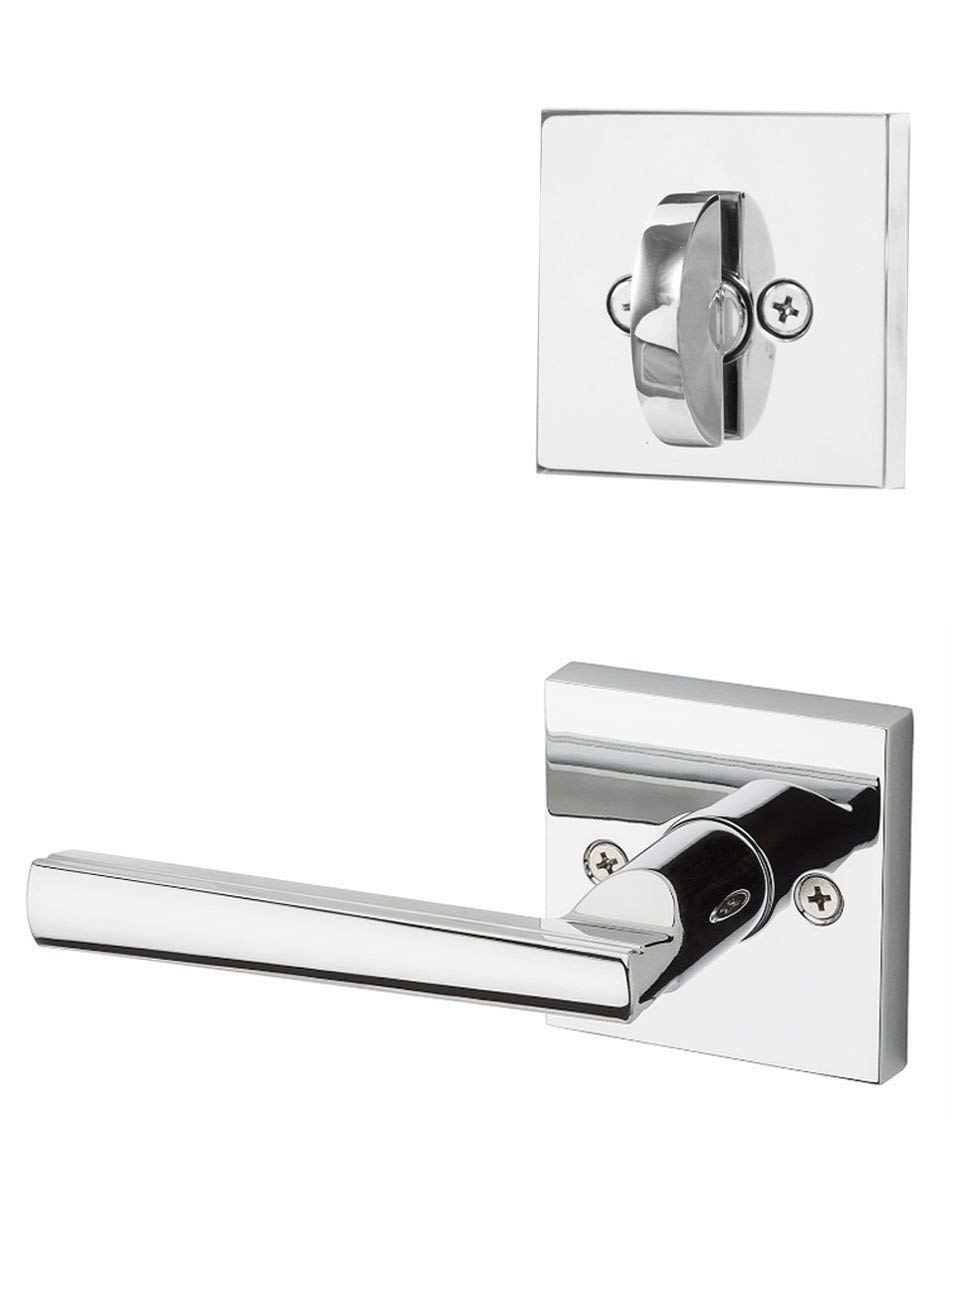 Kwikset 966L-26GC Laurel Interior Single Cylinder Handleset Trim Bright Chrome Finish with New Chassis